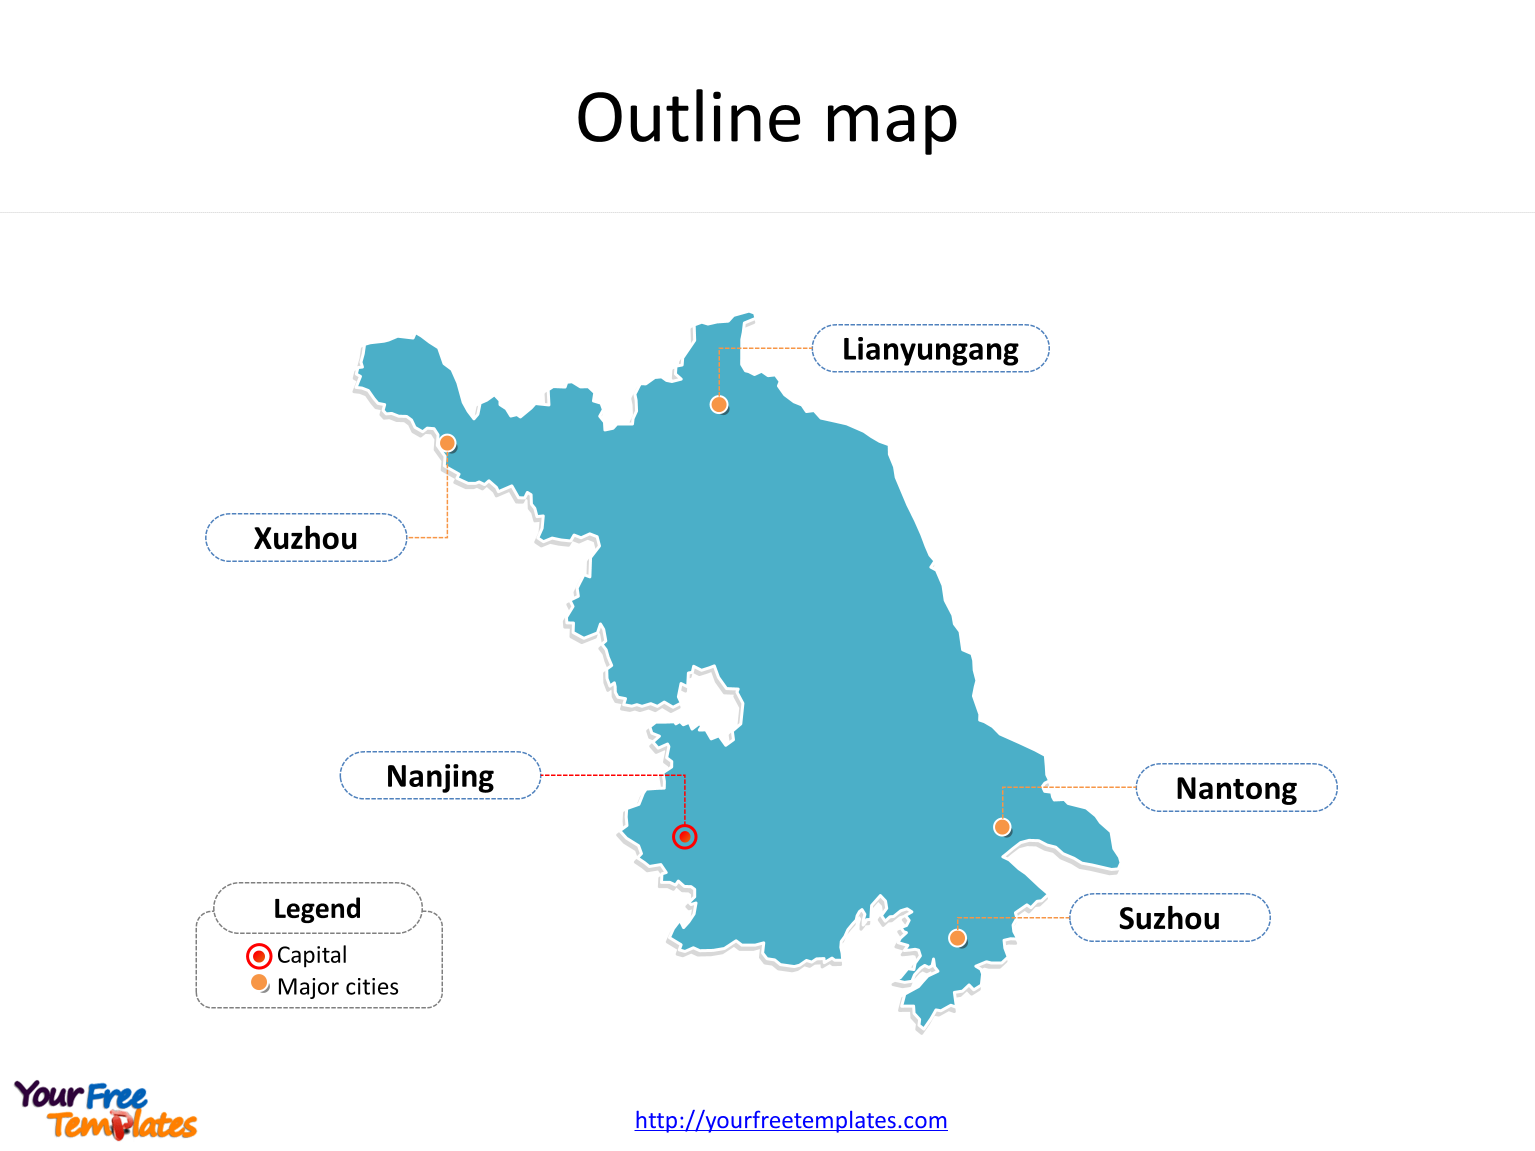 Province of Jiangsu map with outline and cities labeled on the Jiangsu maps PowerPoint templates